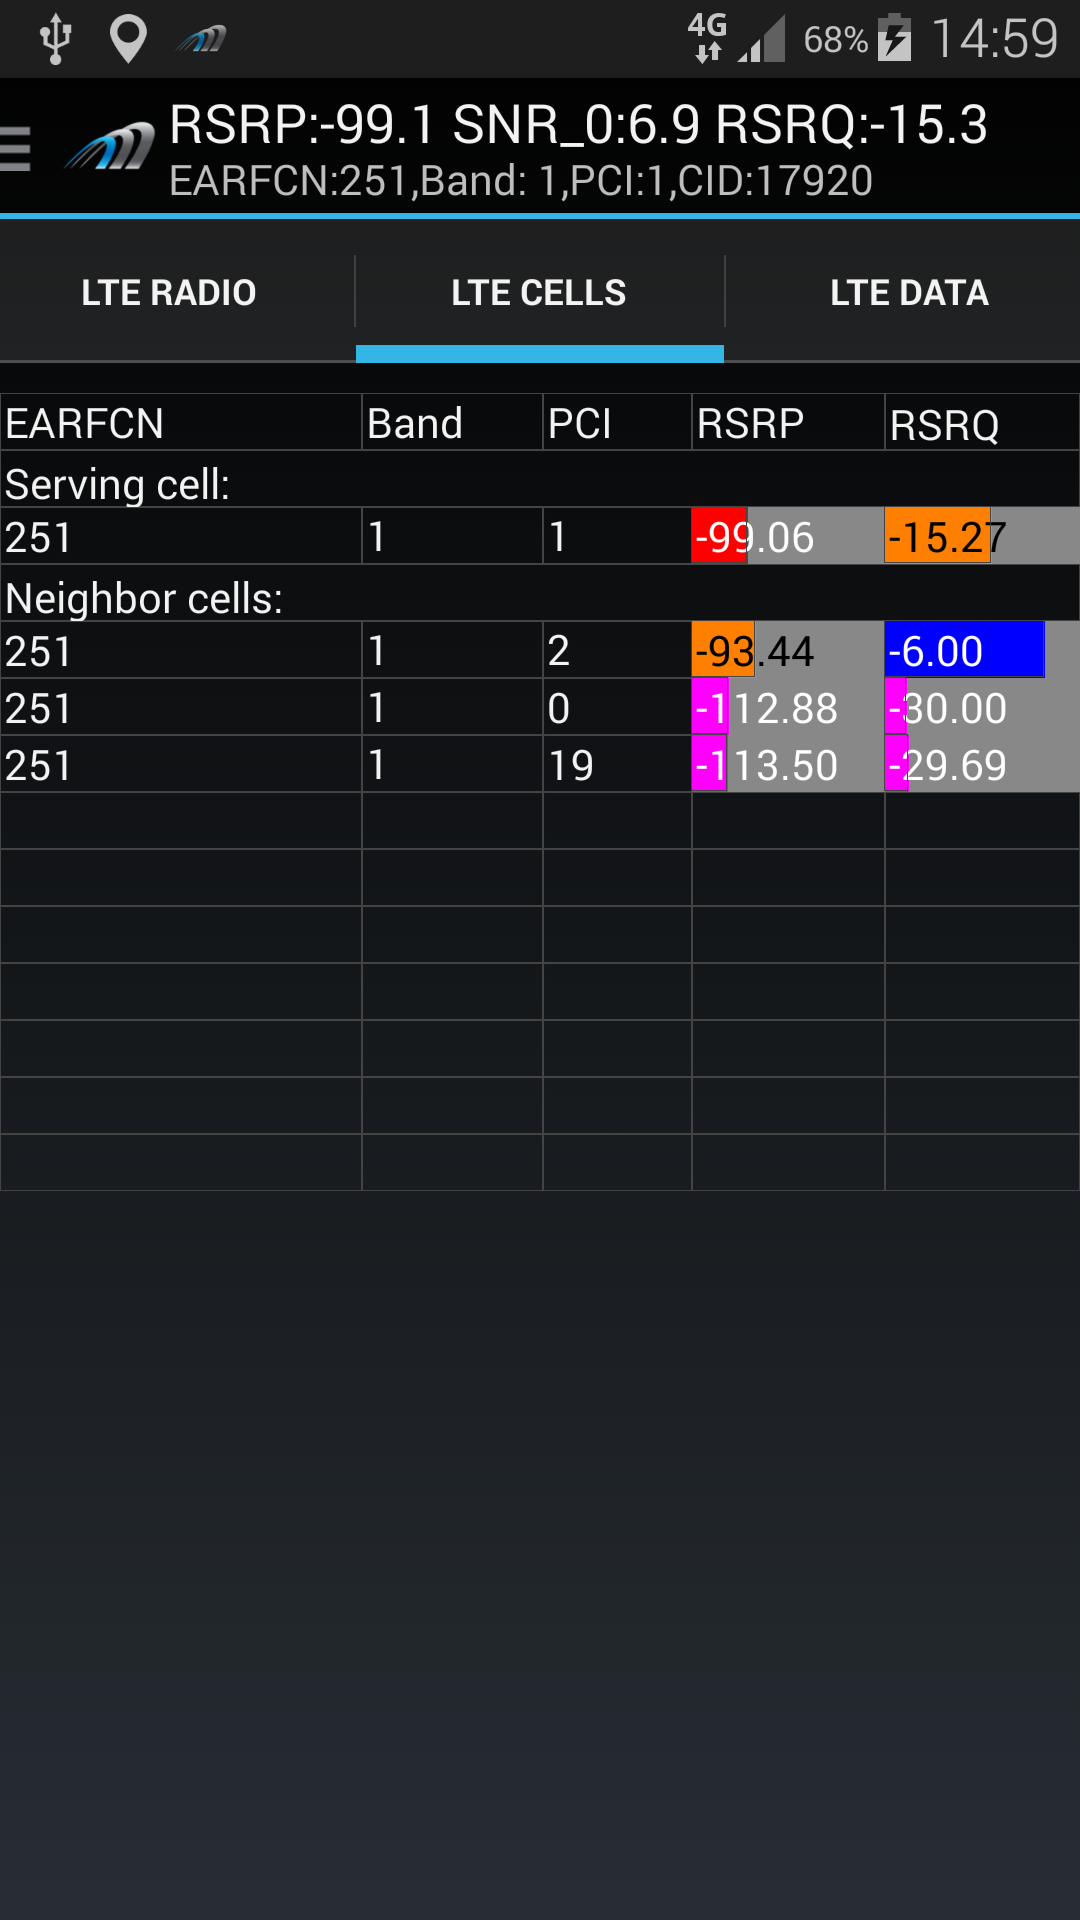 AZQ on Samsung S5 LTE Neighbor Cells